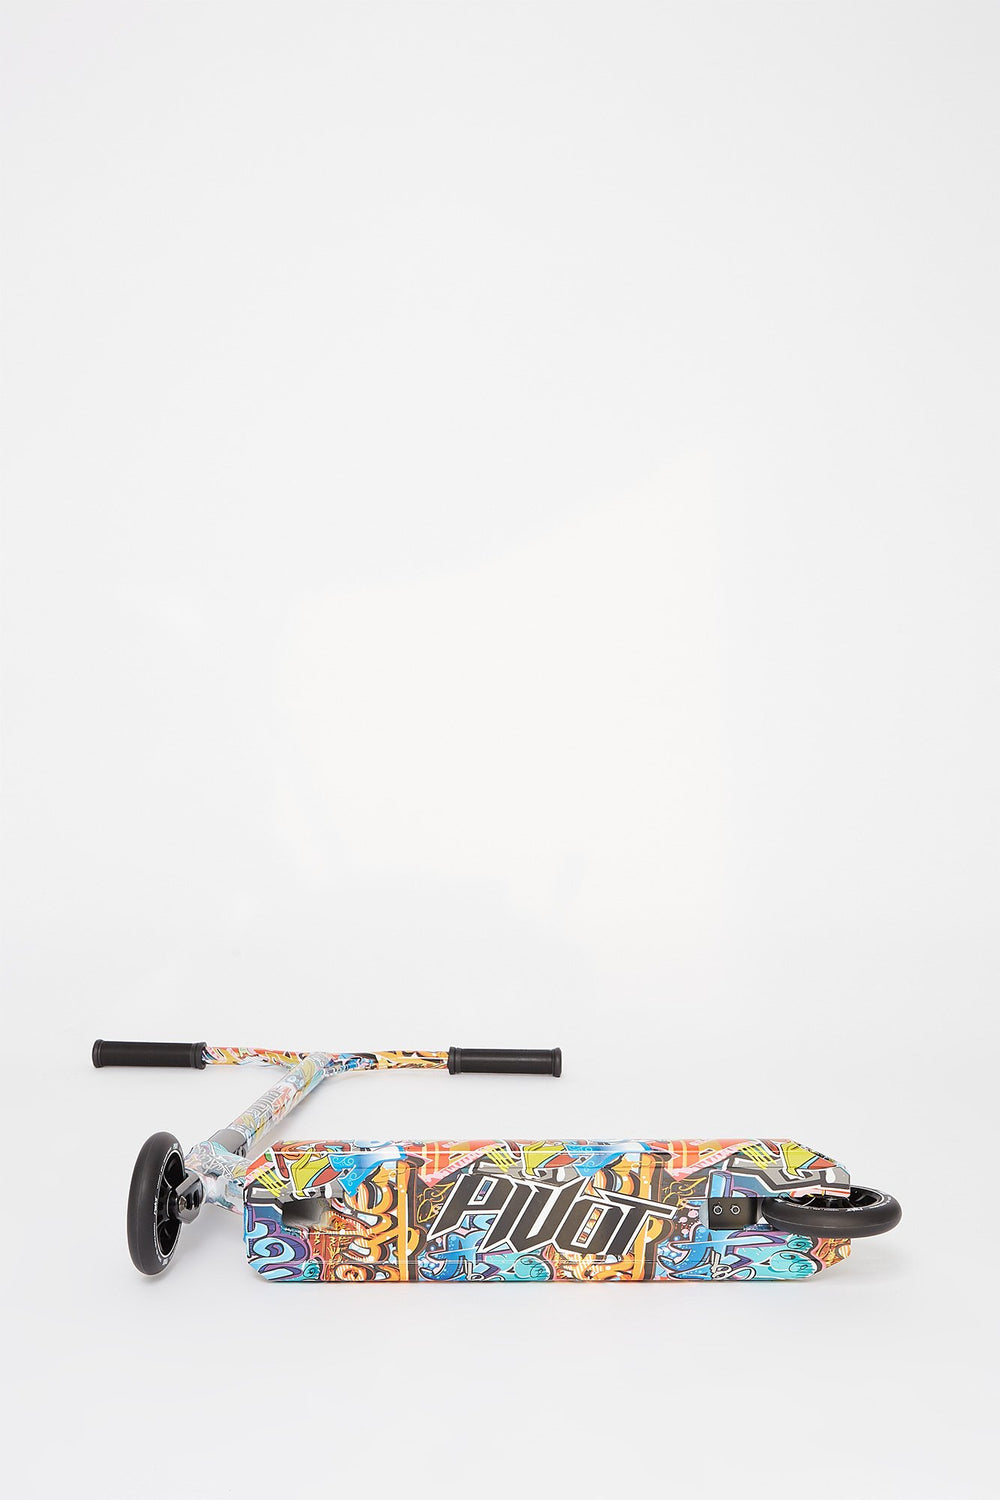 Pivot X-UP-S Graffiti Wrap Scooter Multi